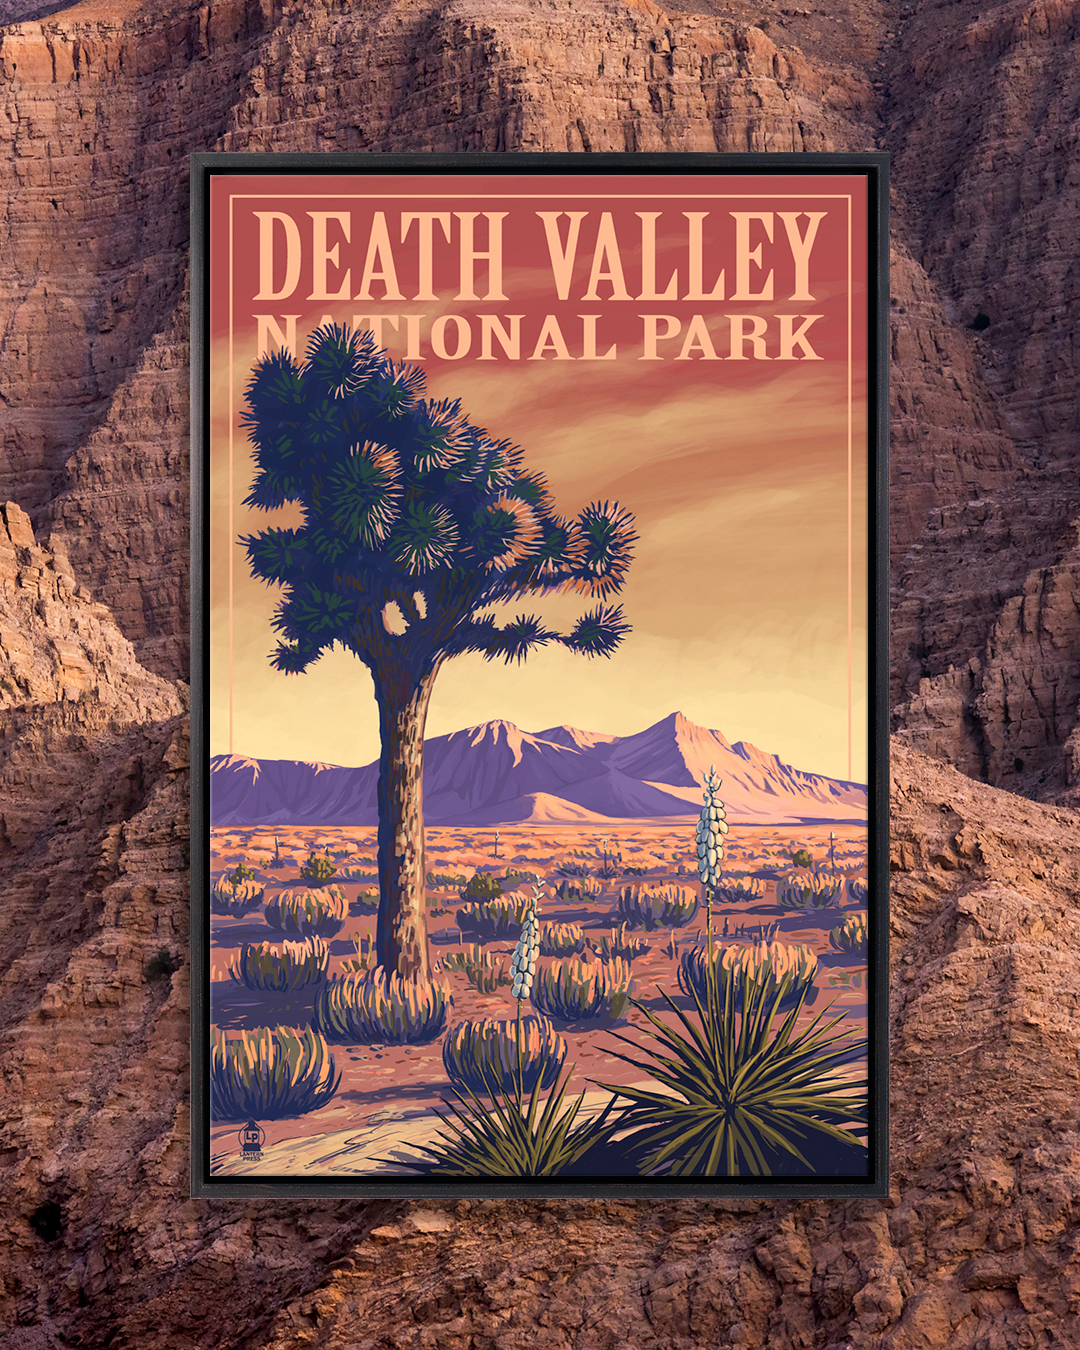 Wall art poster for Death Valley National park against a red rock background by Lantern Press